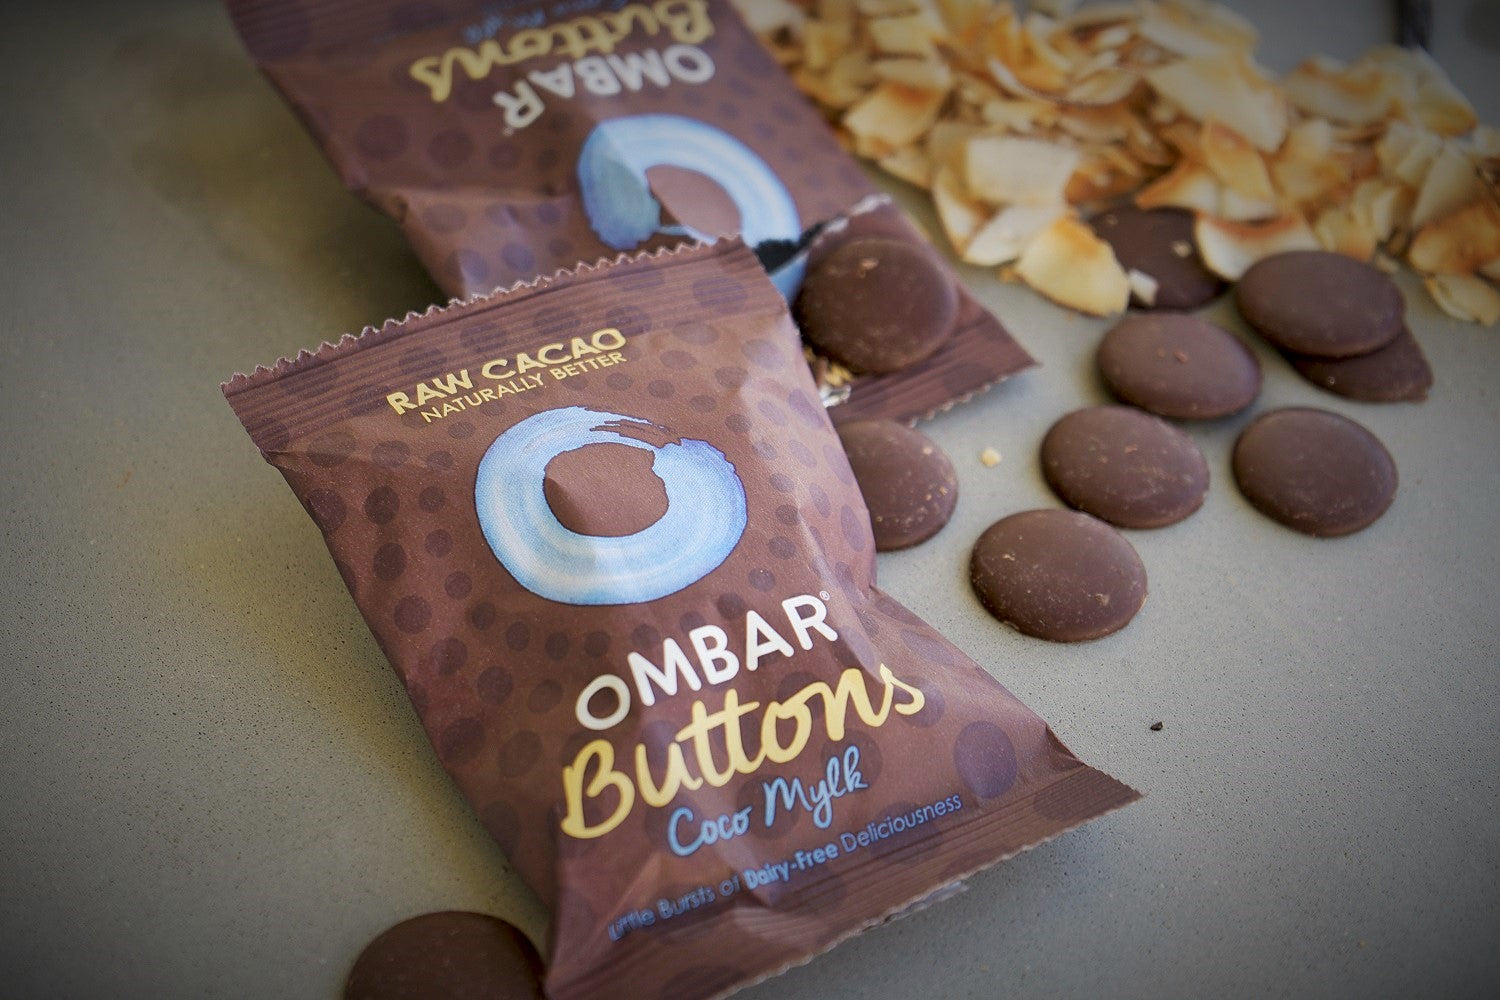 Ombar Coco Mylk Buttons in the Best Chocolate Cake